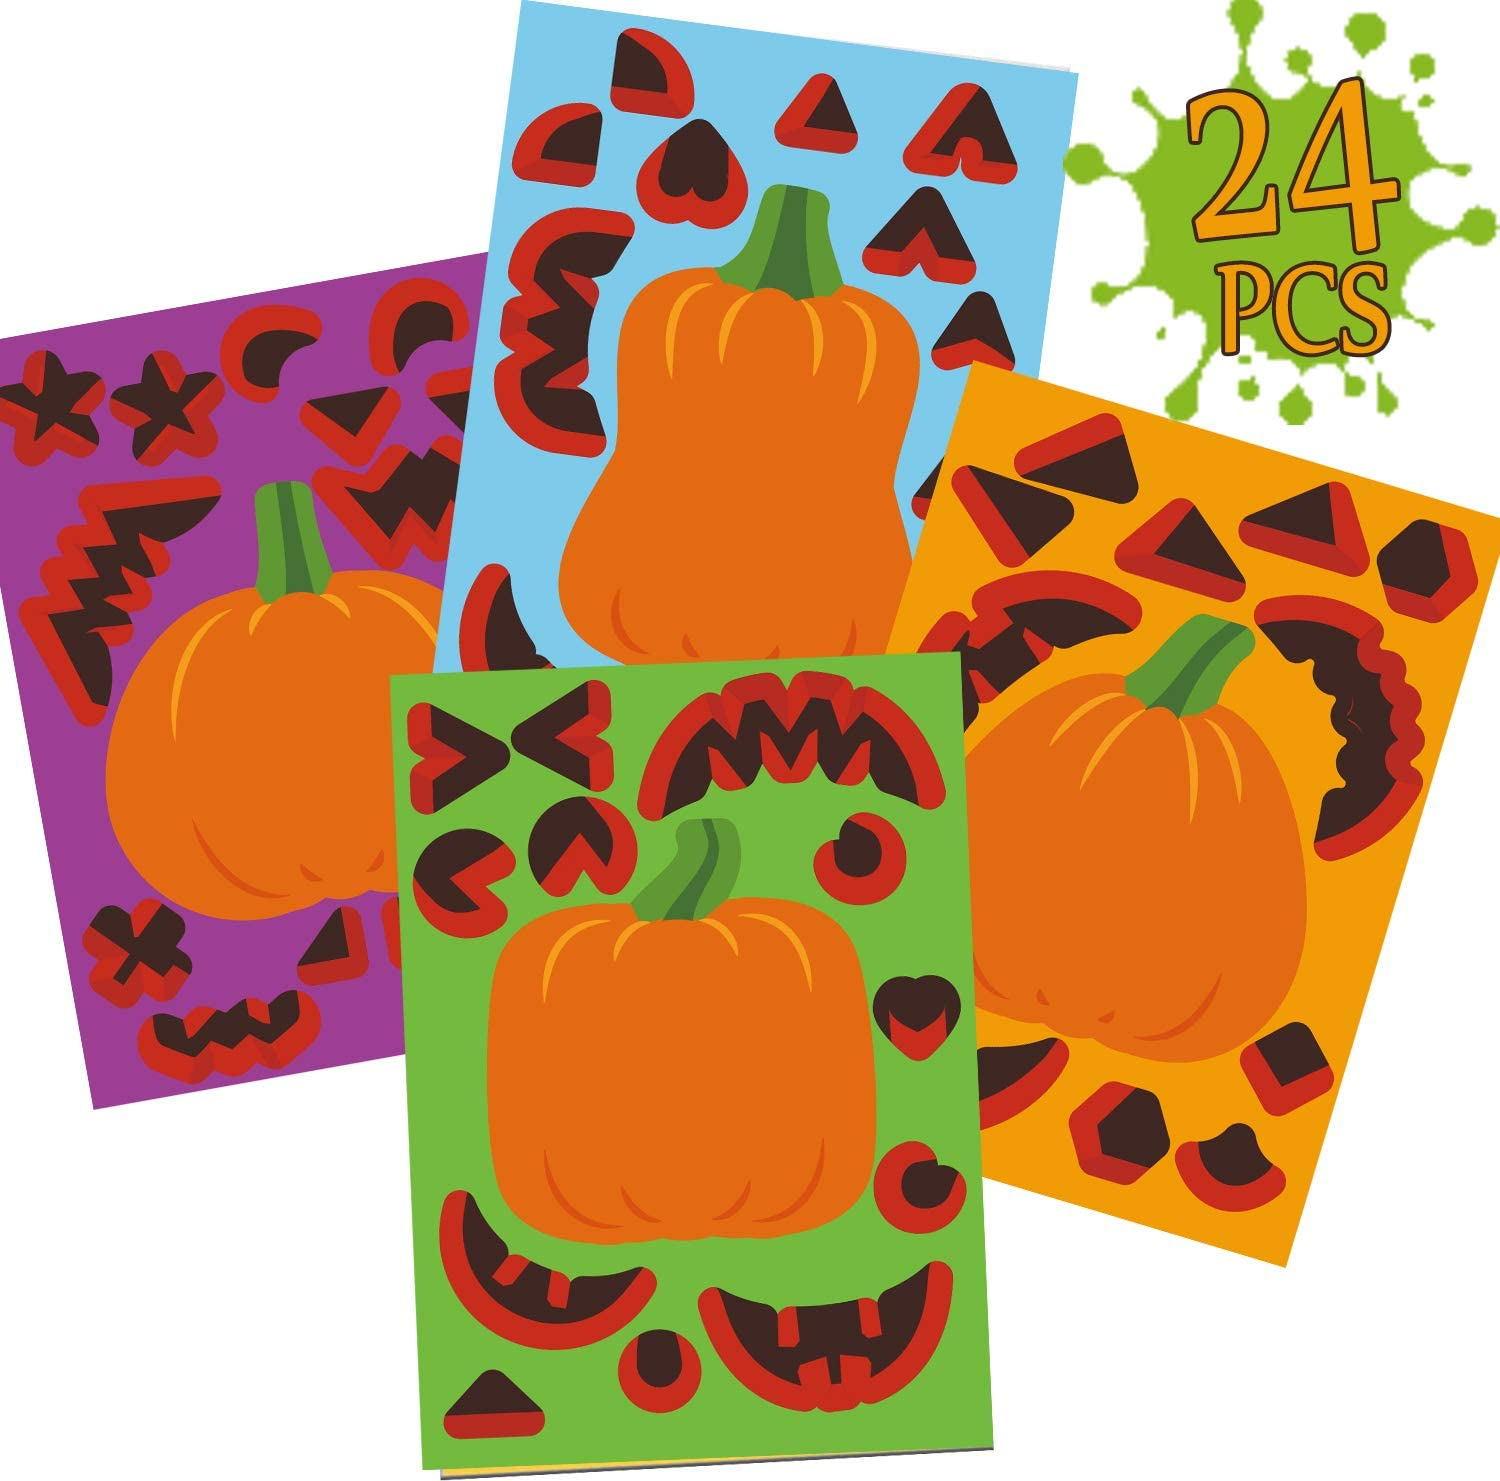 24 Cute and Funny Face Stickers Halloween Party Supplies Decor Idea Gifts and Treats for Kids Make Your Own Jack-O-Lantern Face Decals Halloween Pumpkin Decorating Craft Stickers